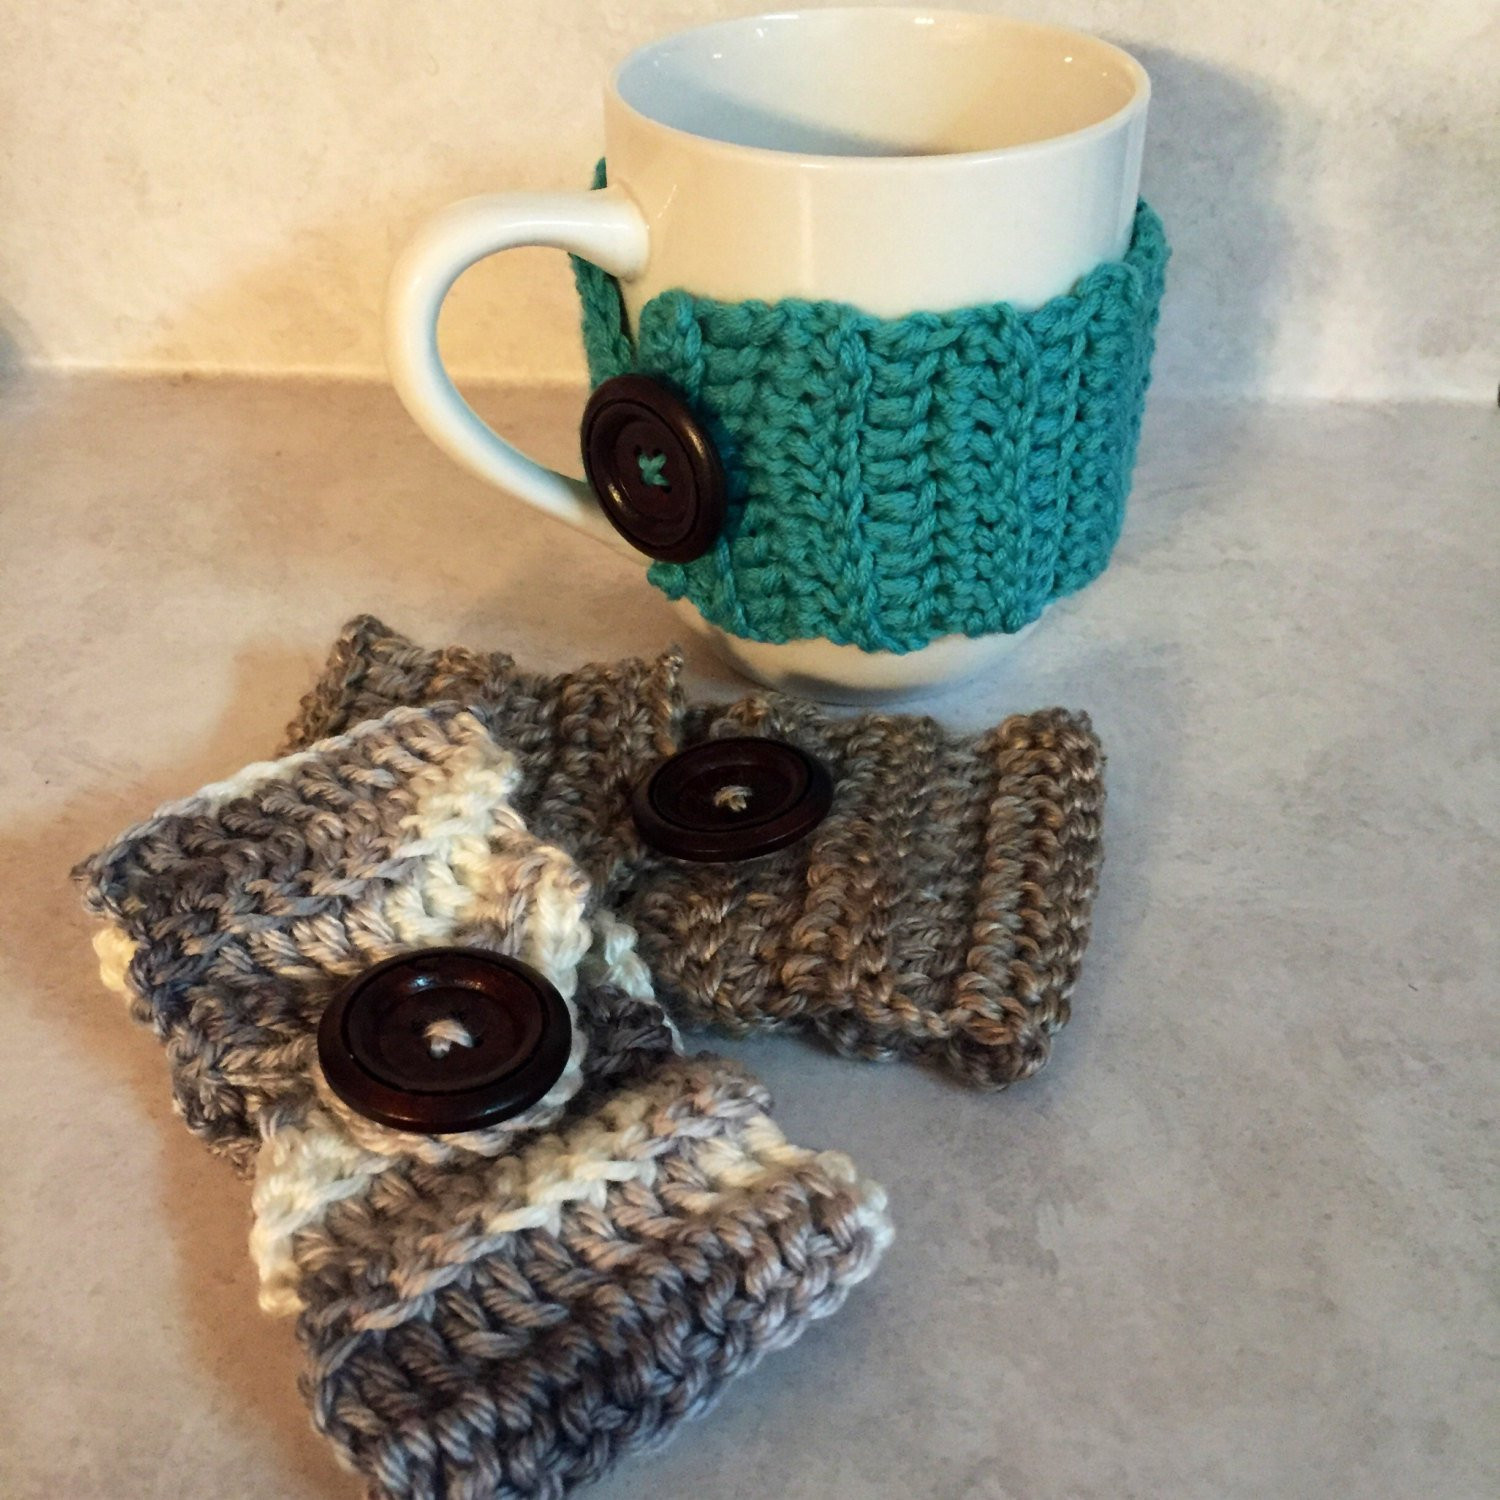 Crochet Coffee Cup Cozy New Crochet Tea Cozy Coffee Cup Sleeve Coffee Sleeve Mug Cozy Of Crochet Coffee Cup Cozy Awesome Crochet Coffee Cozy Amy Latta Creations